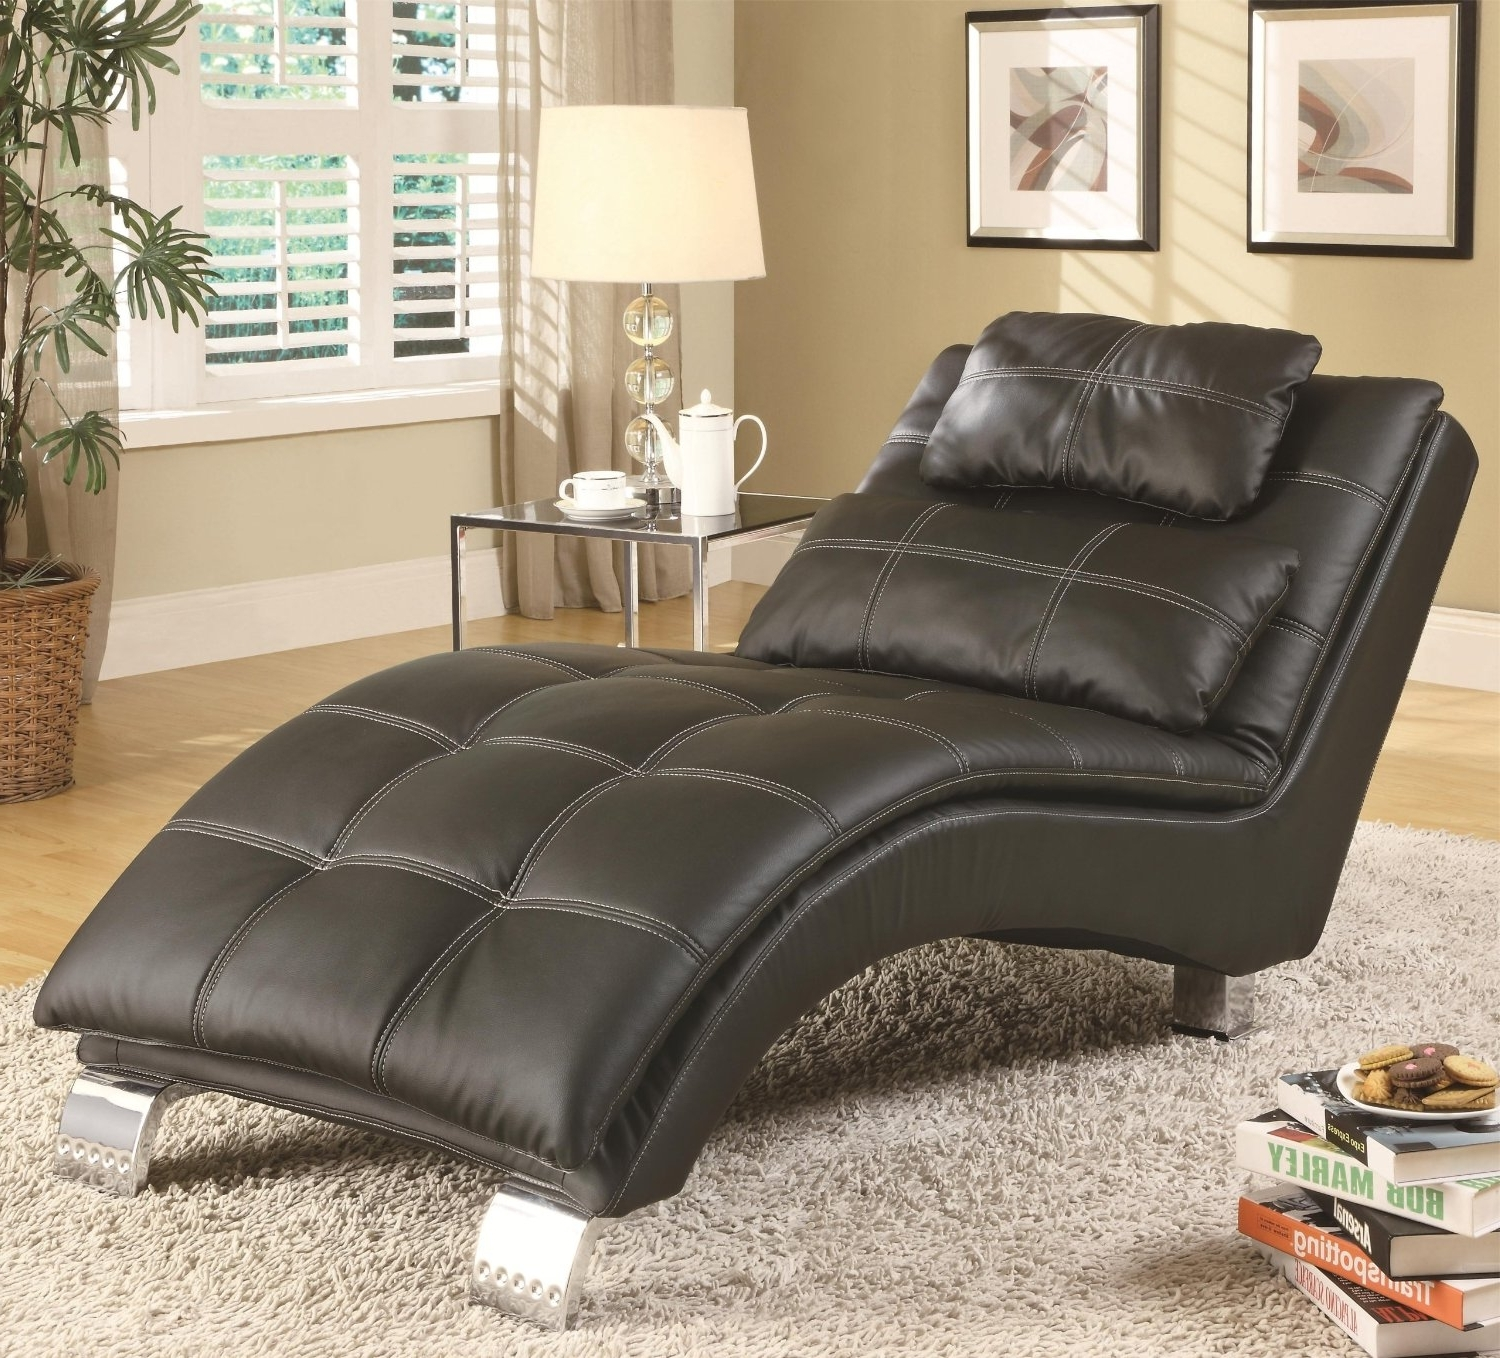 2017 Microfiber Chaise Lounge Chairs Pertaining To Furniture: Cheap Chaise Chairs (View 11 of 15)